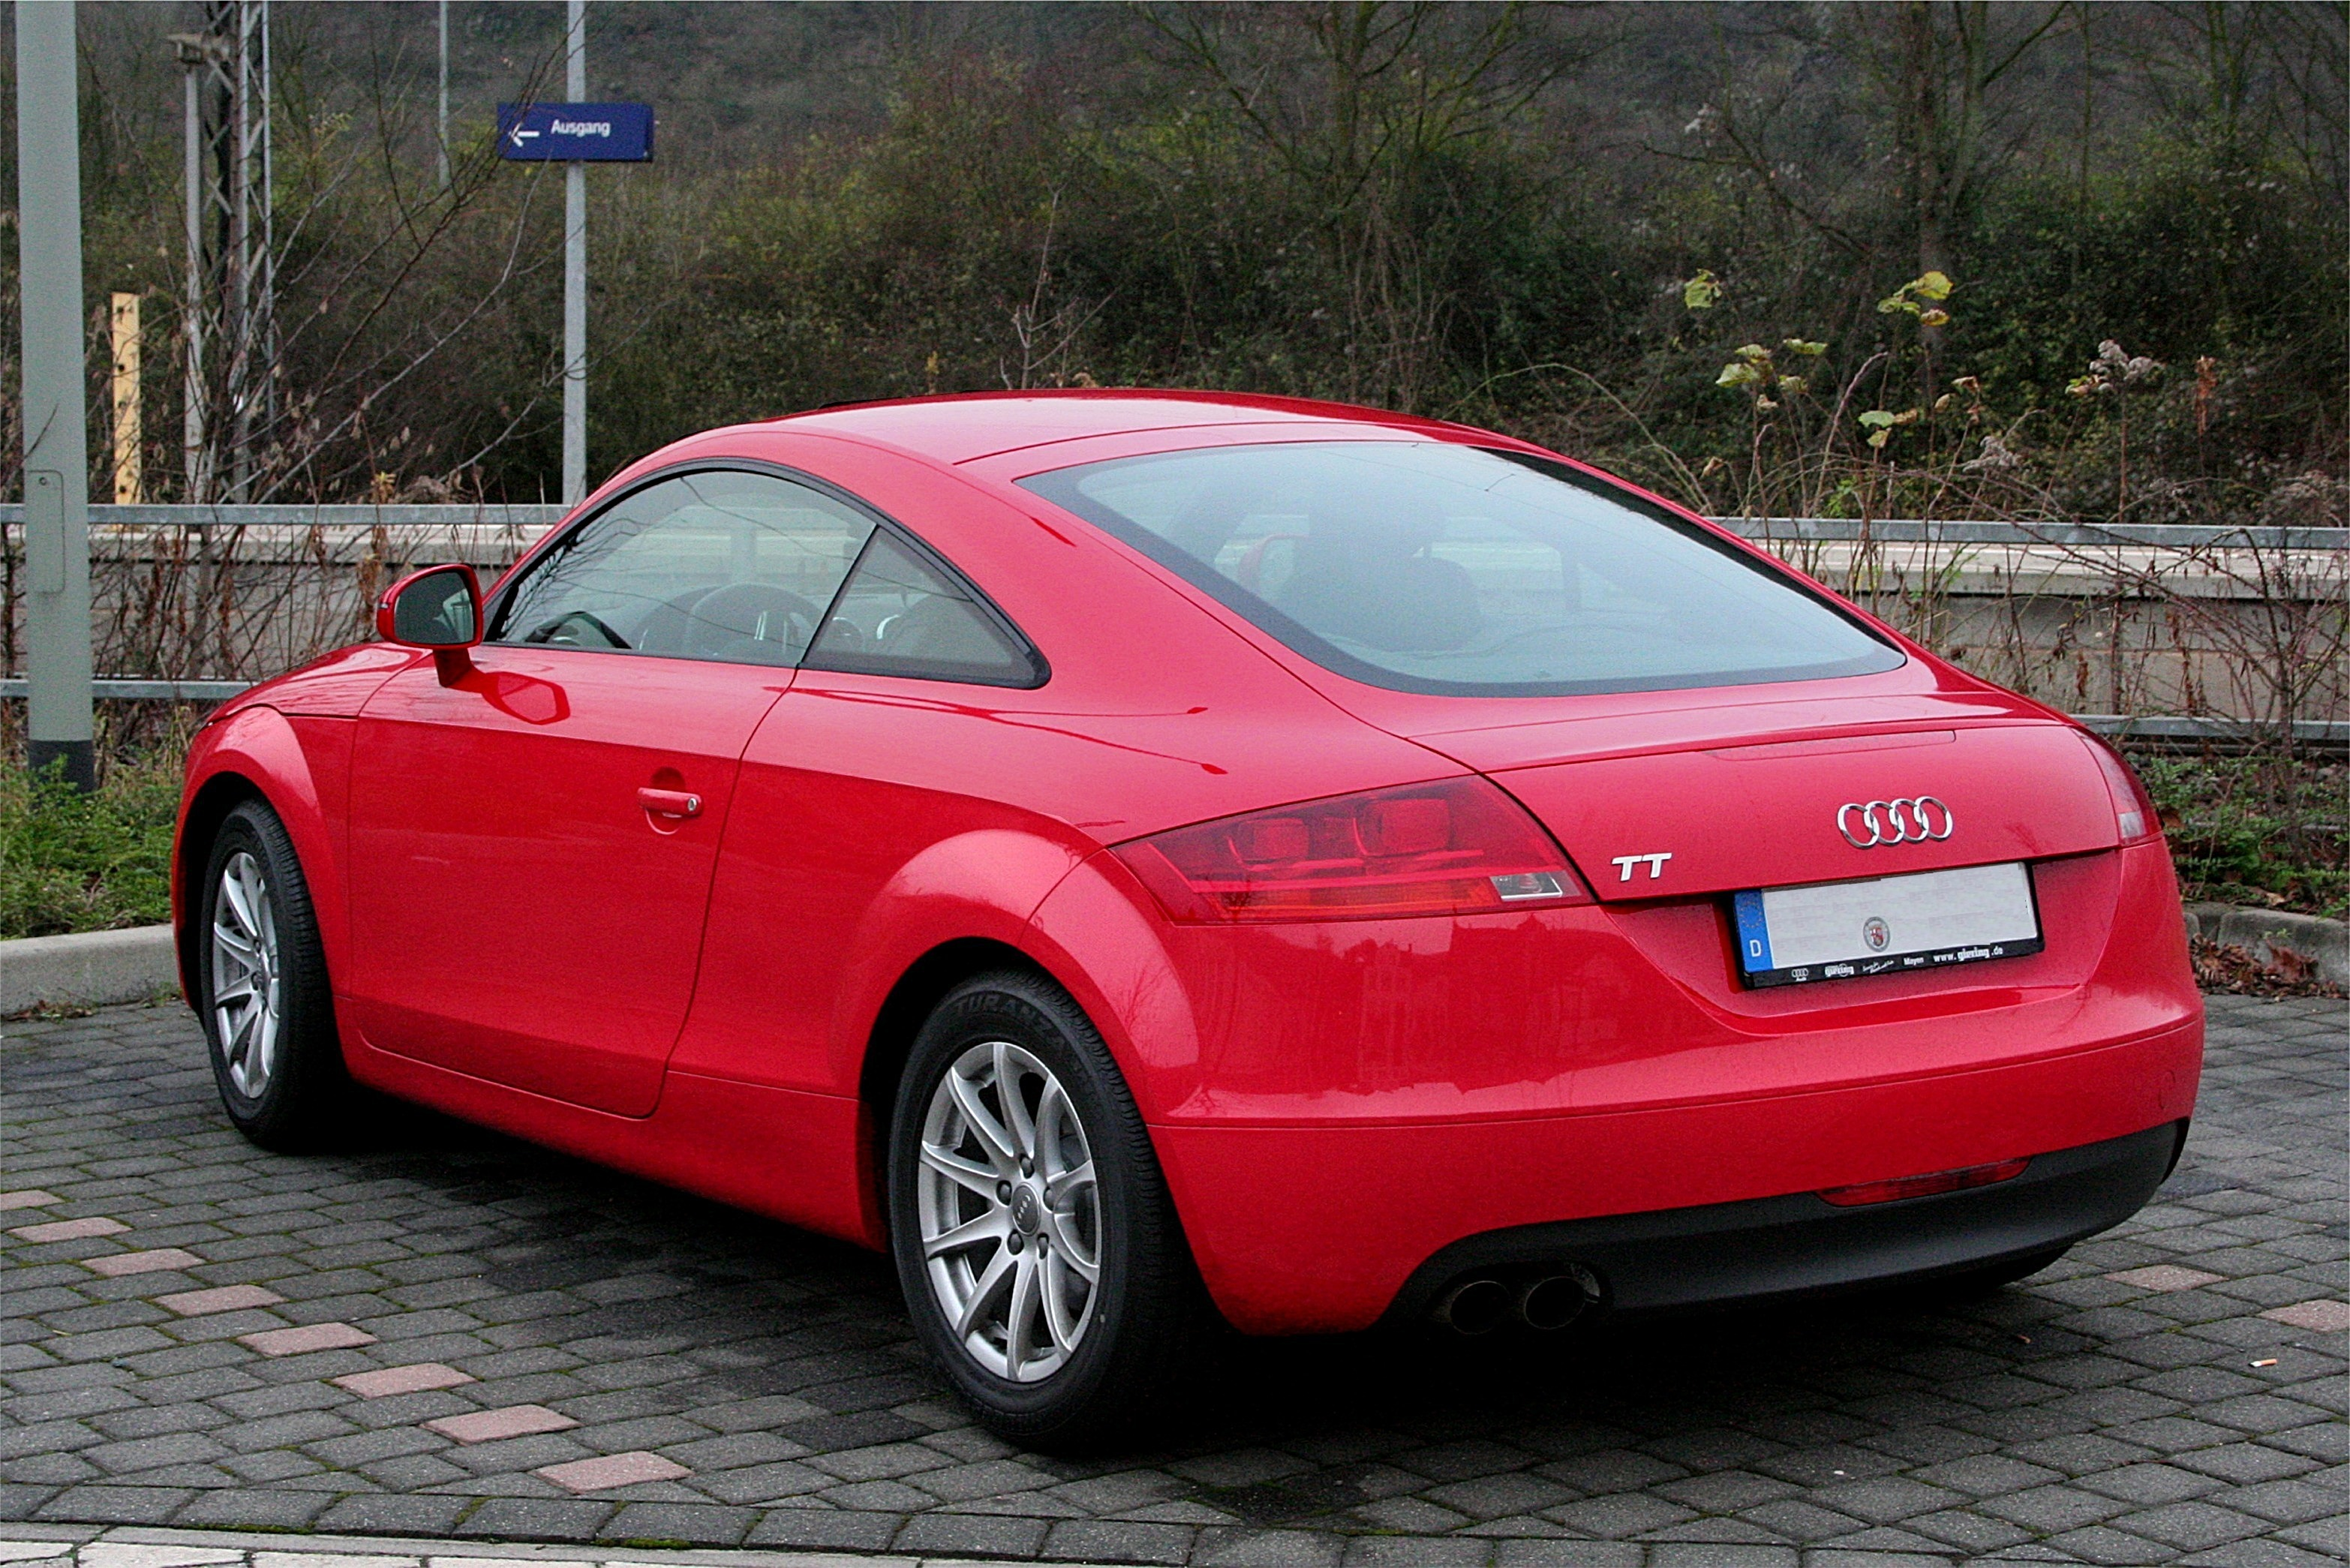 File Audi Tt Bj 2006 2006 12 25 05 Retusch Jpg